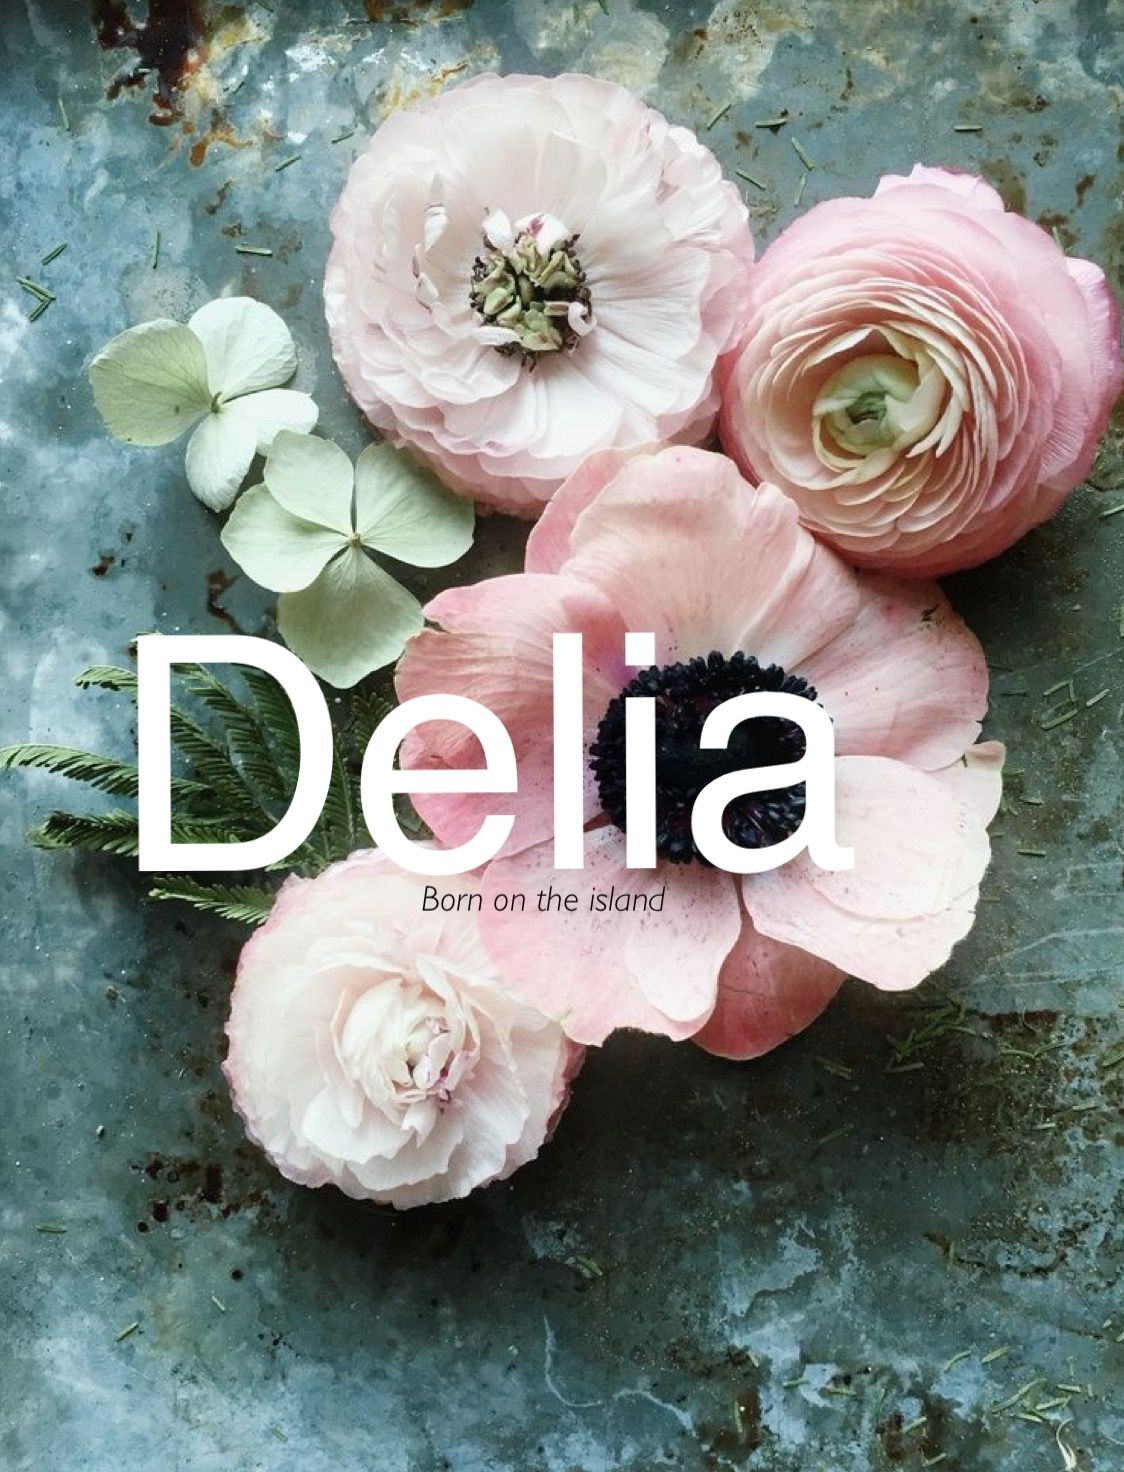 Delia, baby girl names, baby names, D baby girl names, middle girl names, short baby names, feminine baby names, names that start with D, unique baby names, sweet girl names